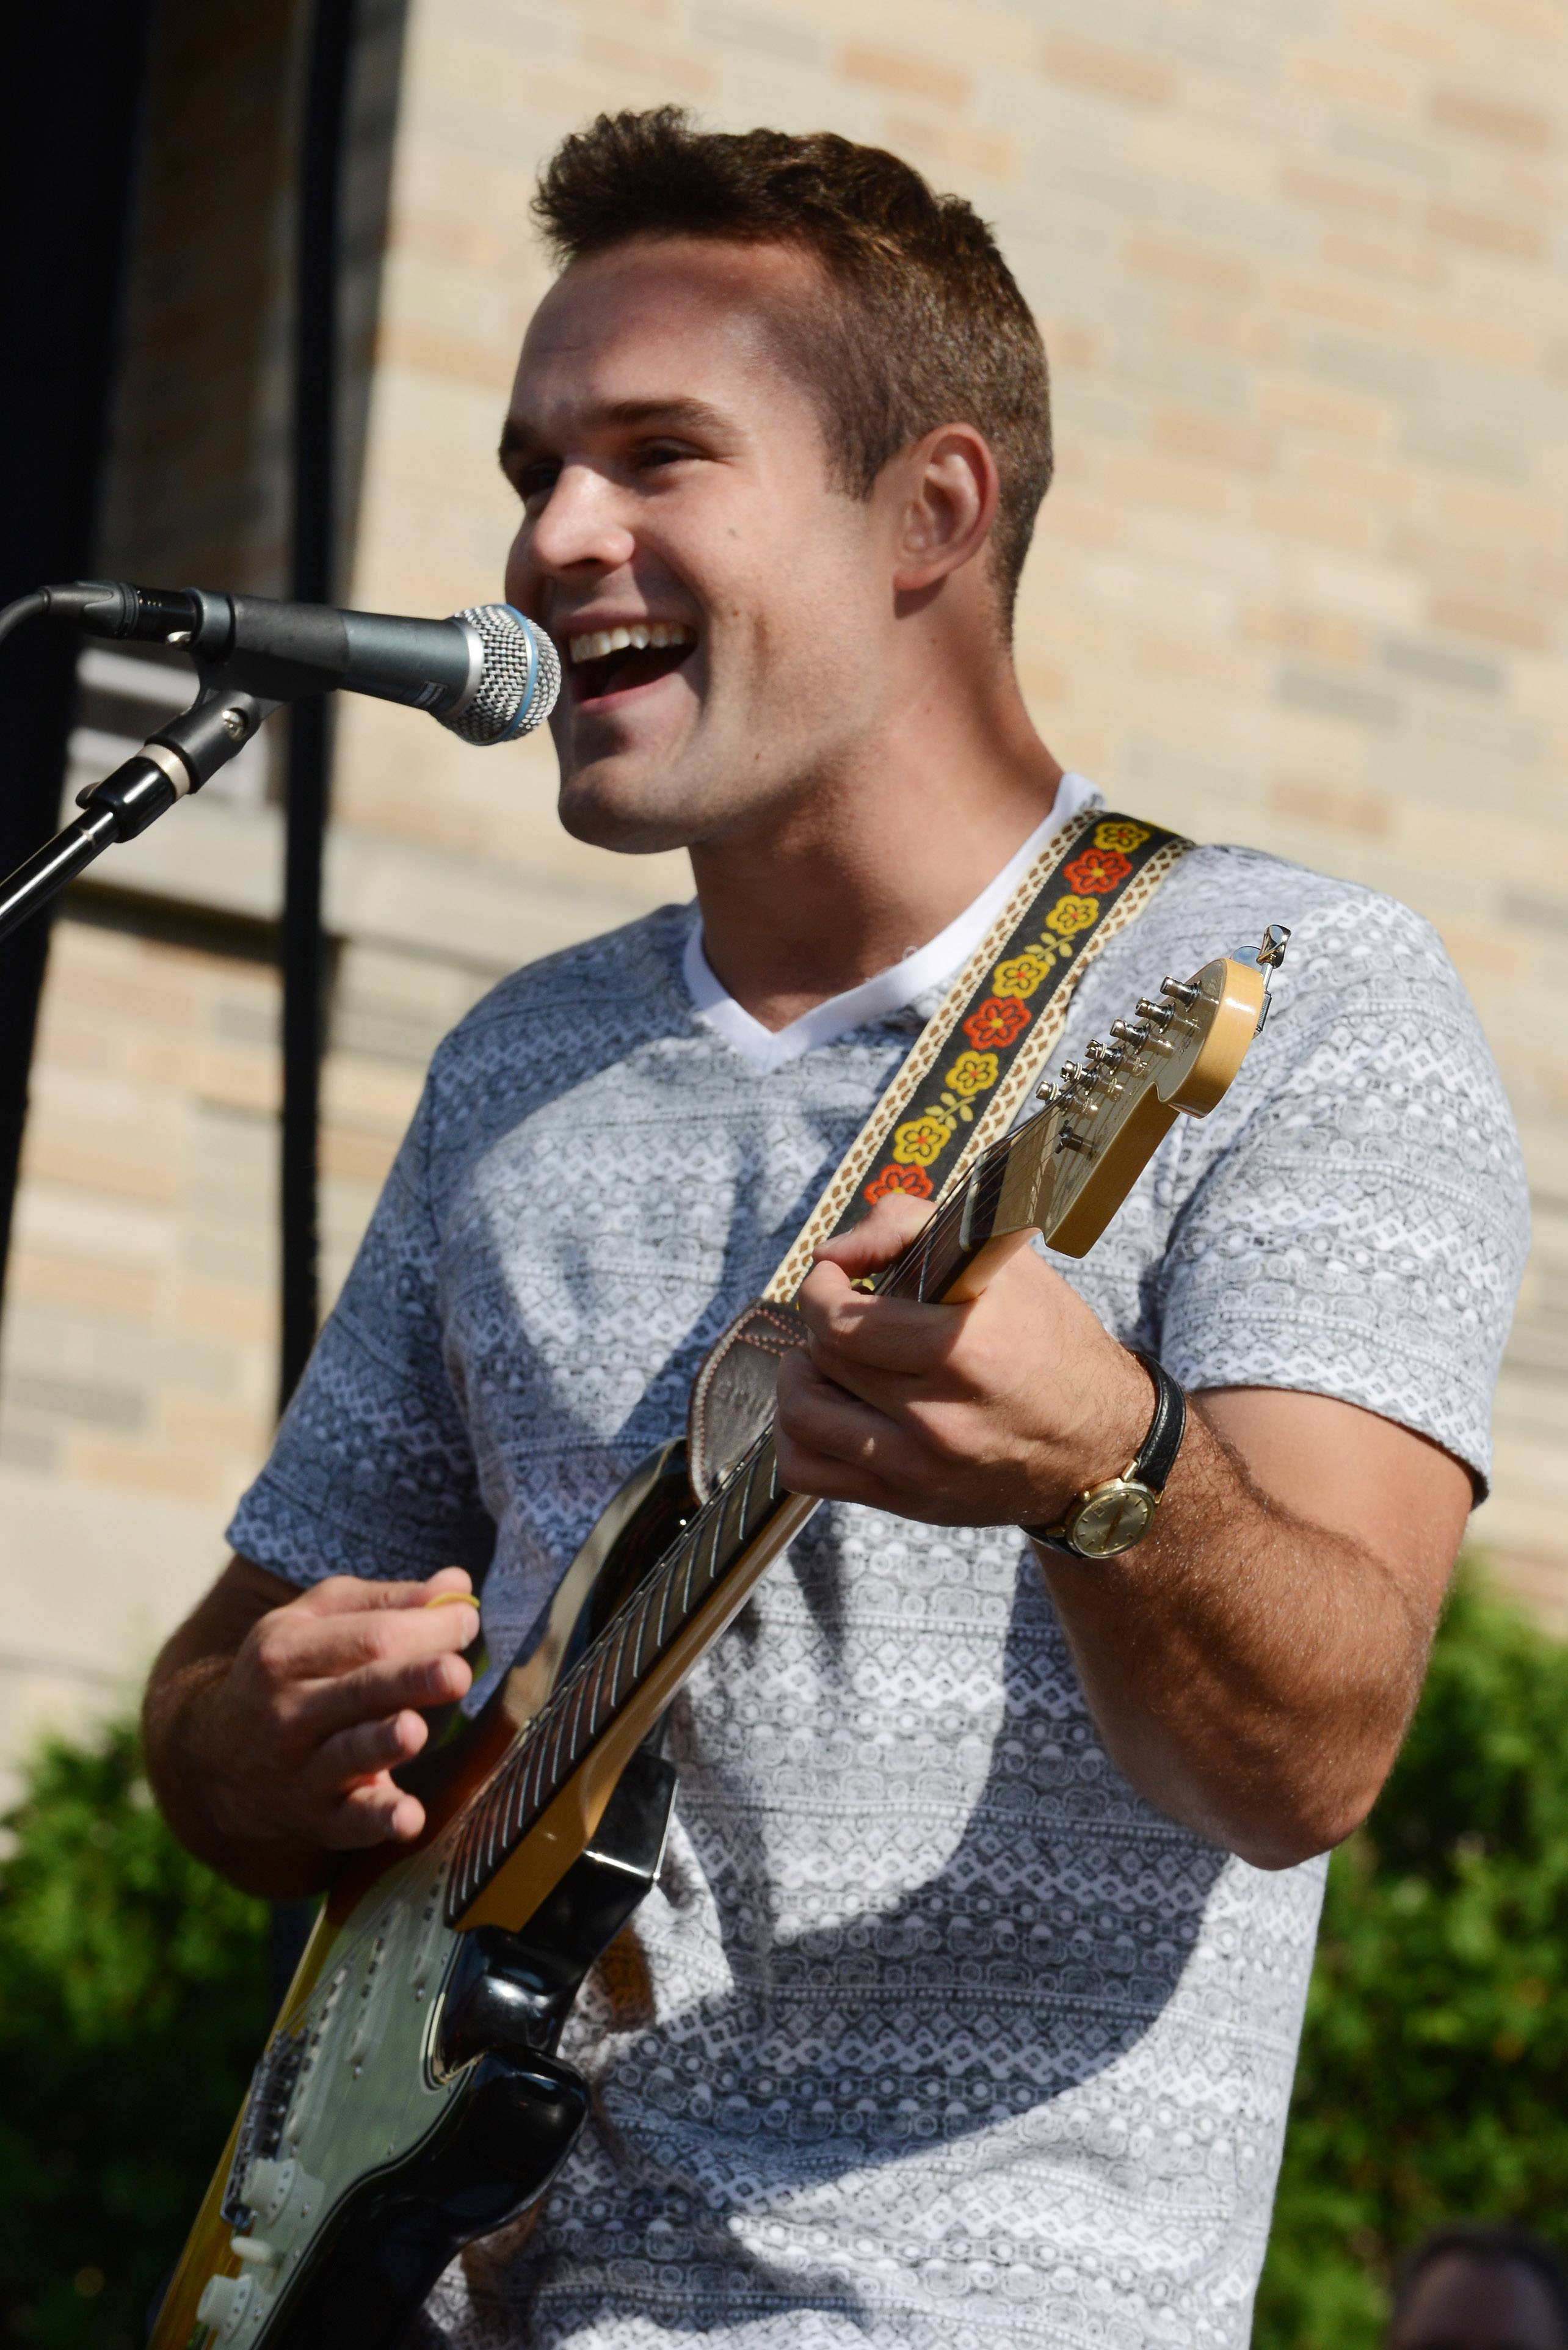 Singer-songwriter Dennis Caravello of Mount Prospect was the winner of Suburban Chicago's Got Talent in 2014. He's pictured here in Arlington Heights at the competition's finale at the Taste of Arlington Heights.